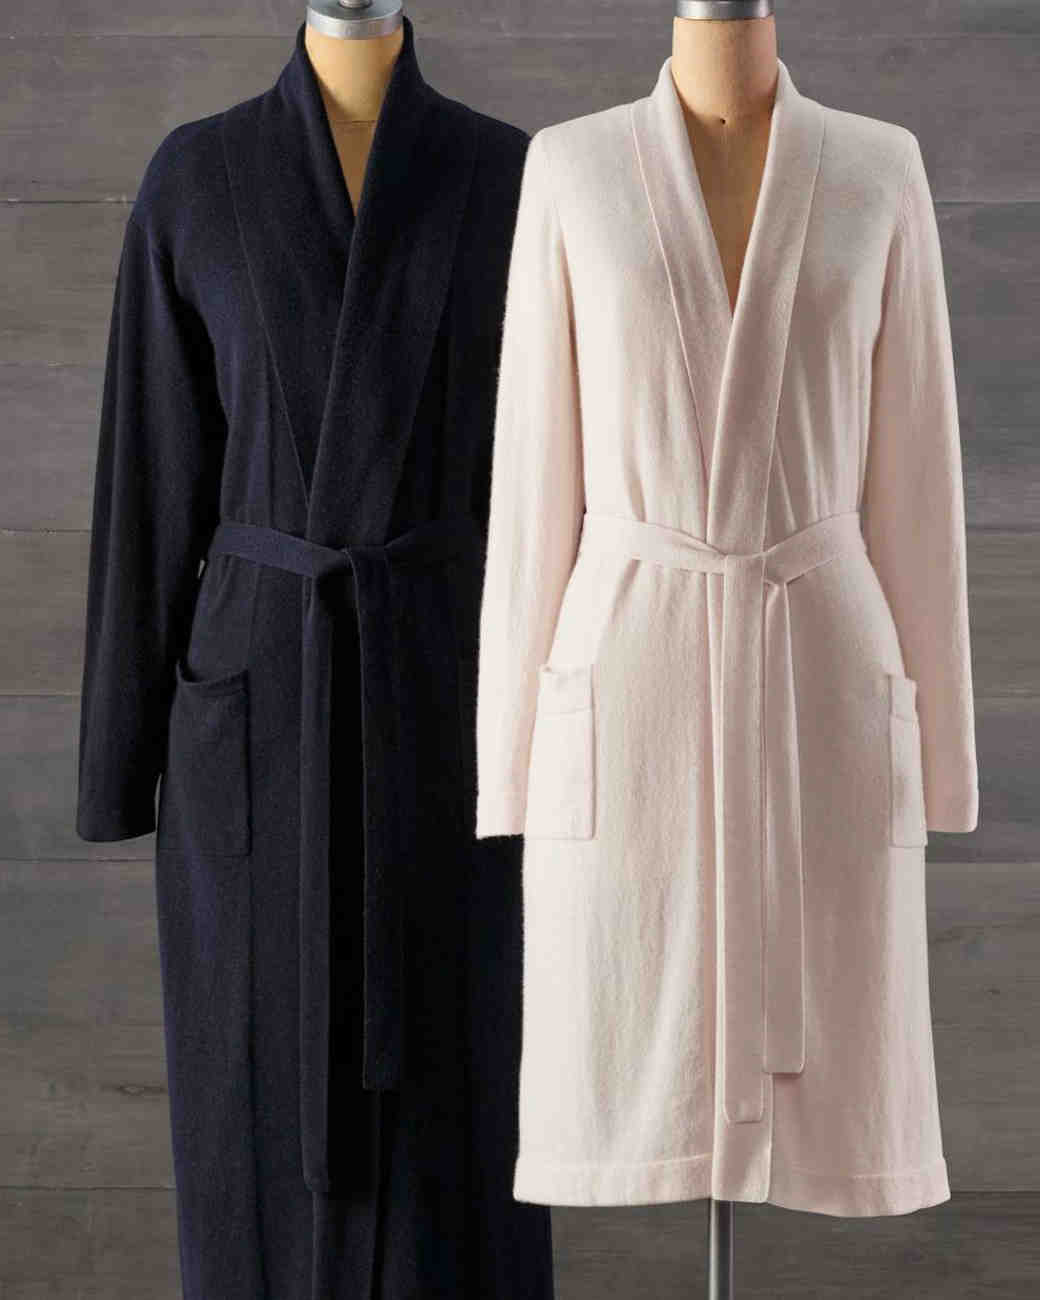 holiday-gift-guide-bride-robe-1215.jpg